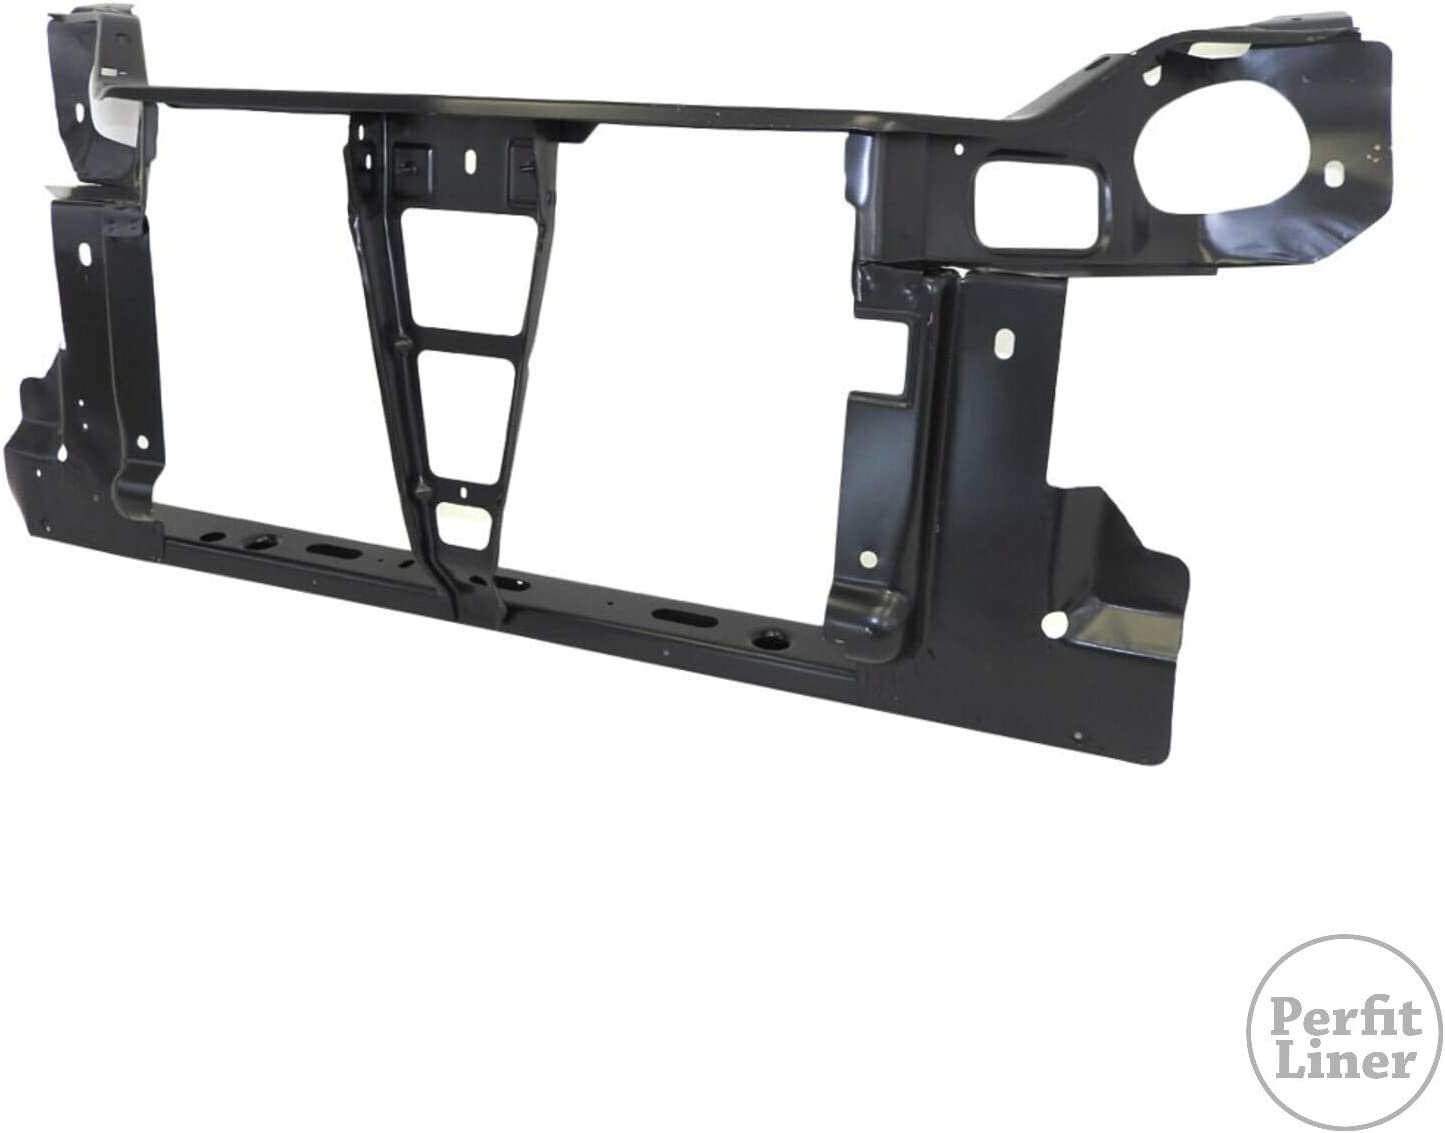 Perfit Liner New Replacement Parts Front Radiator Support Compatible With DODGE Neon SX 2.0 Fits CH1225189 PERFORMANCE